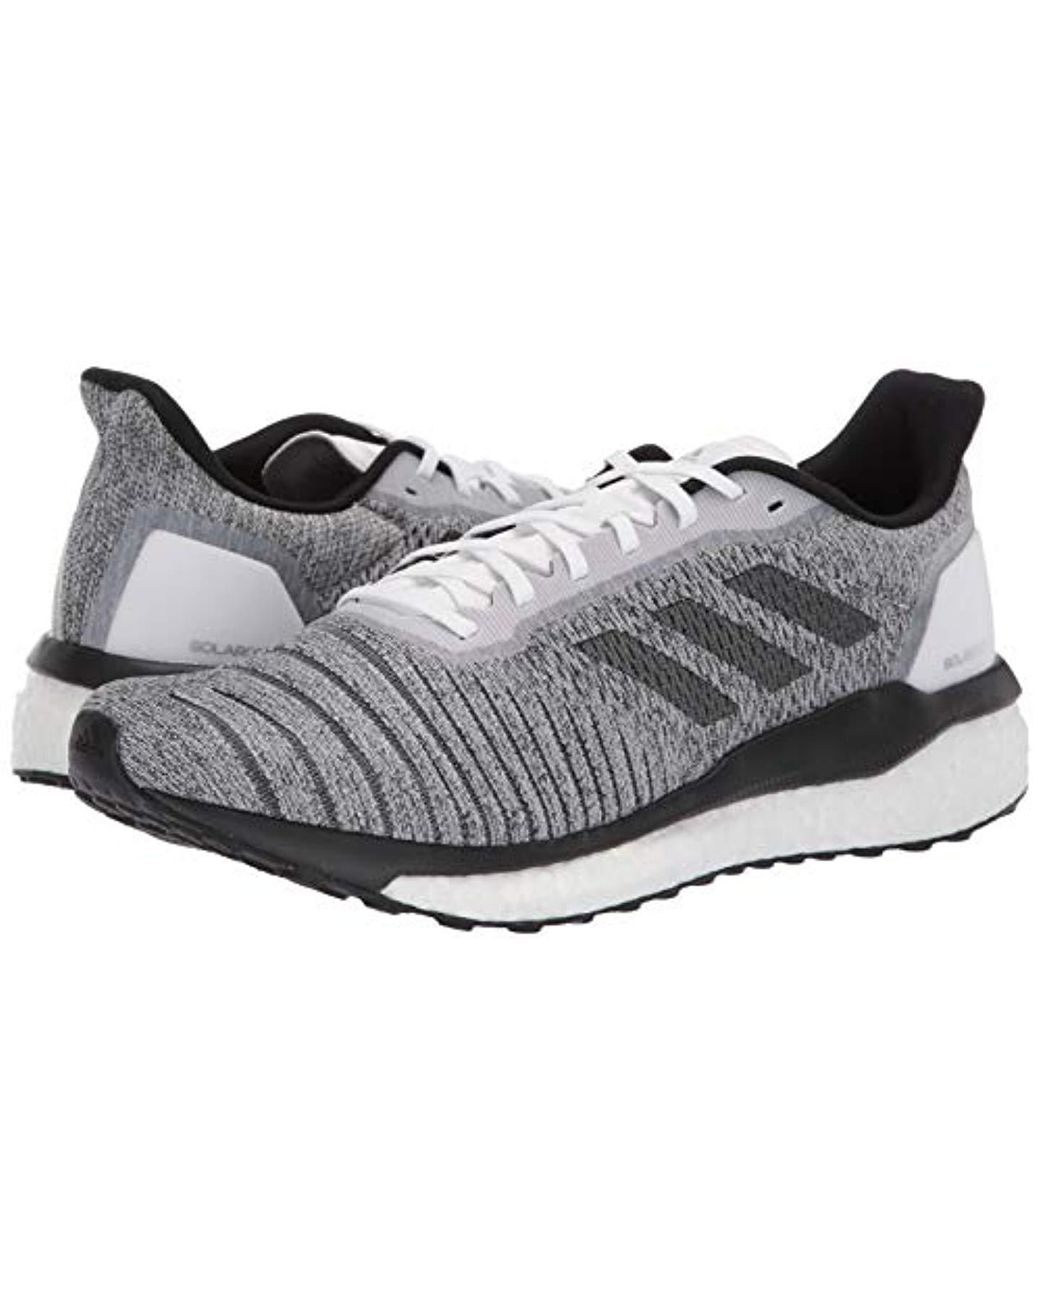 04a21f08ce adidas Solar Drive, White/black/grey, 7.5 M Us in Gray for Men - Lyst